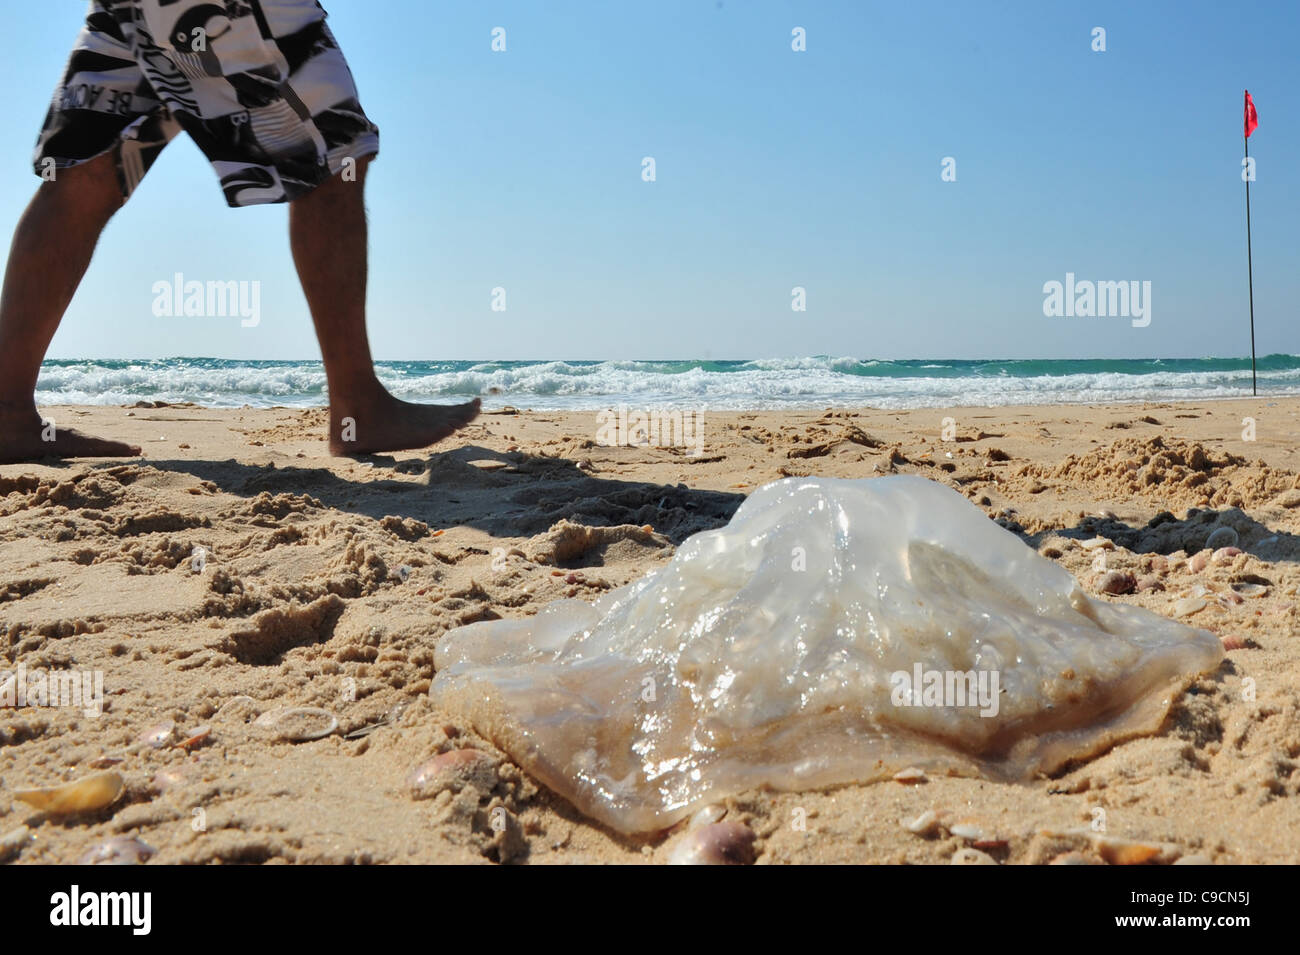 A large dead jellyfish lies on the shore of a beach Stock Photo